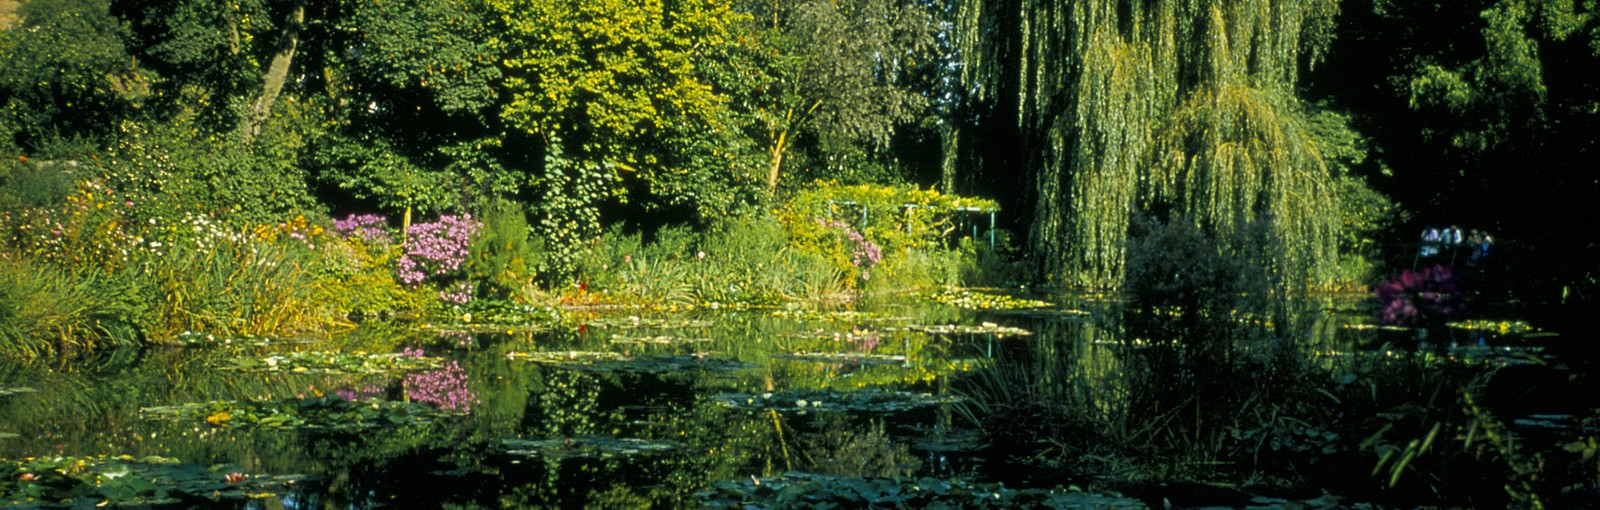 Tours Giverny and Auvers-sur-Oise - Full days - Day tours from Paris